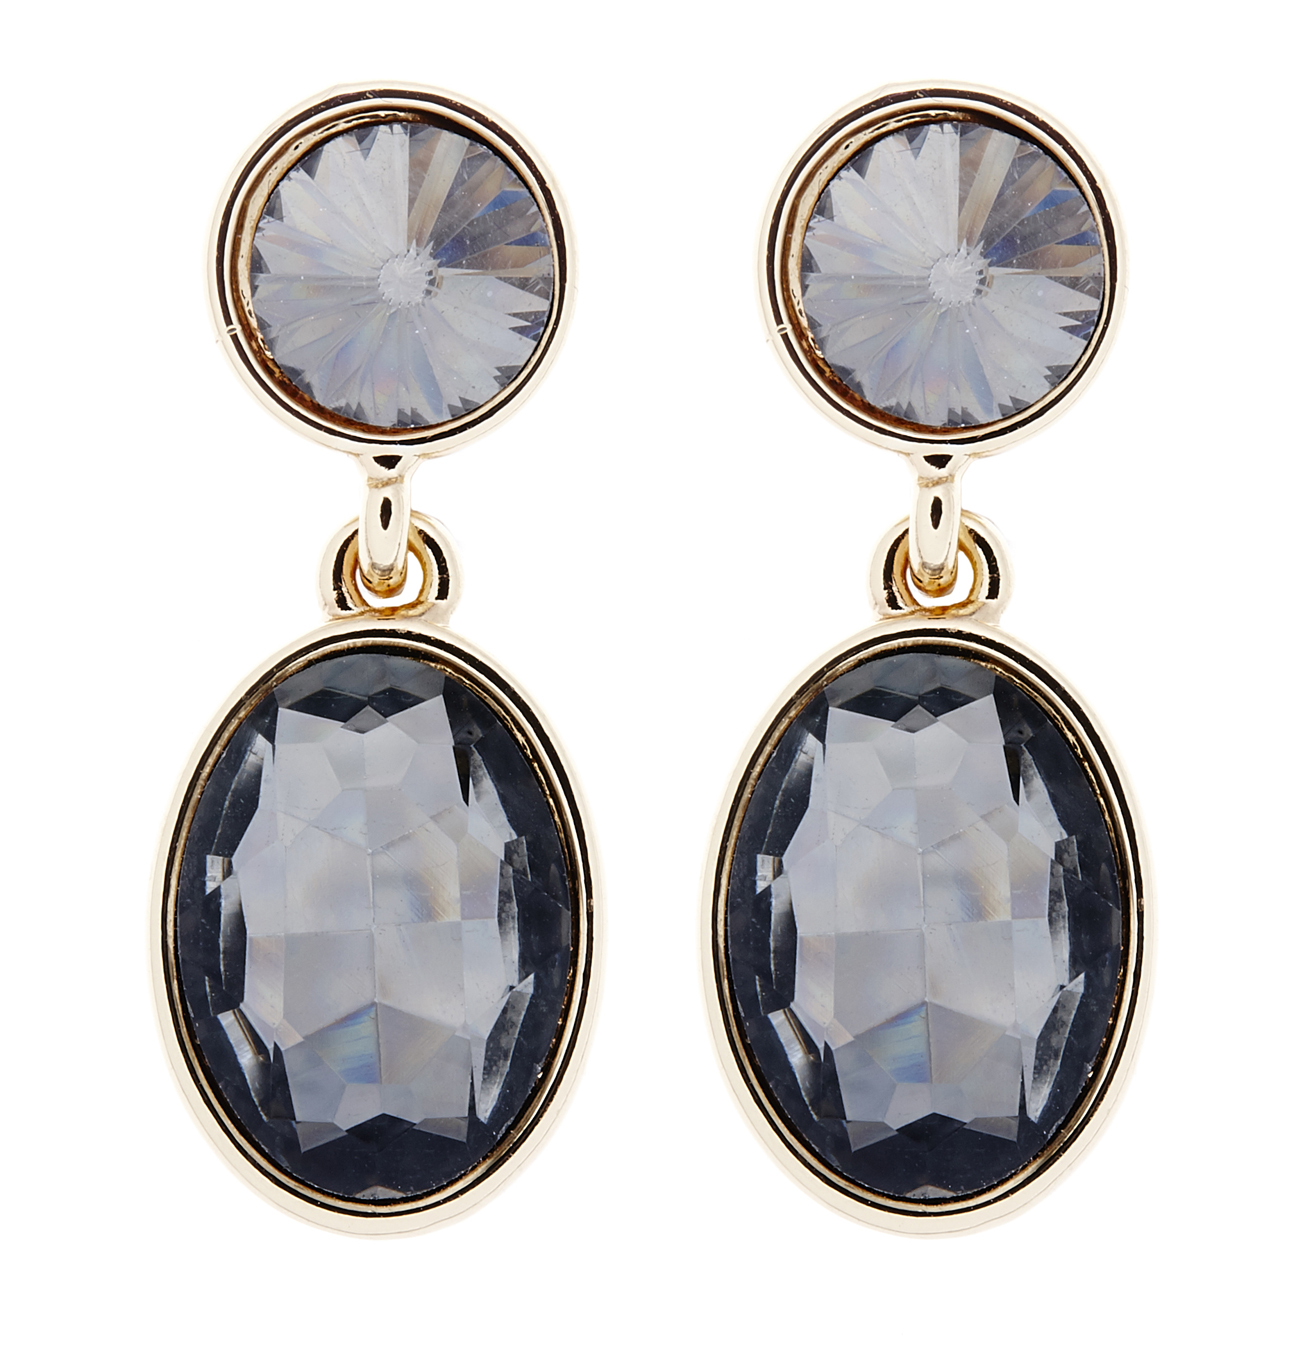 Clip On Earrings - Maddy B - gold drop earring with black crystals